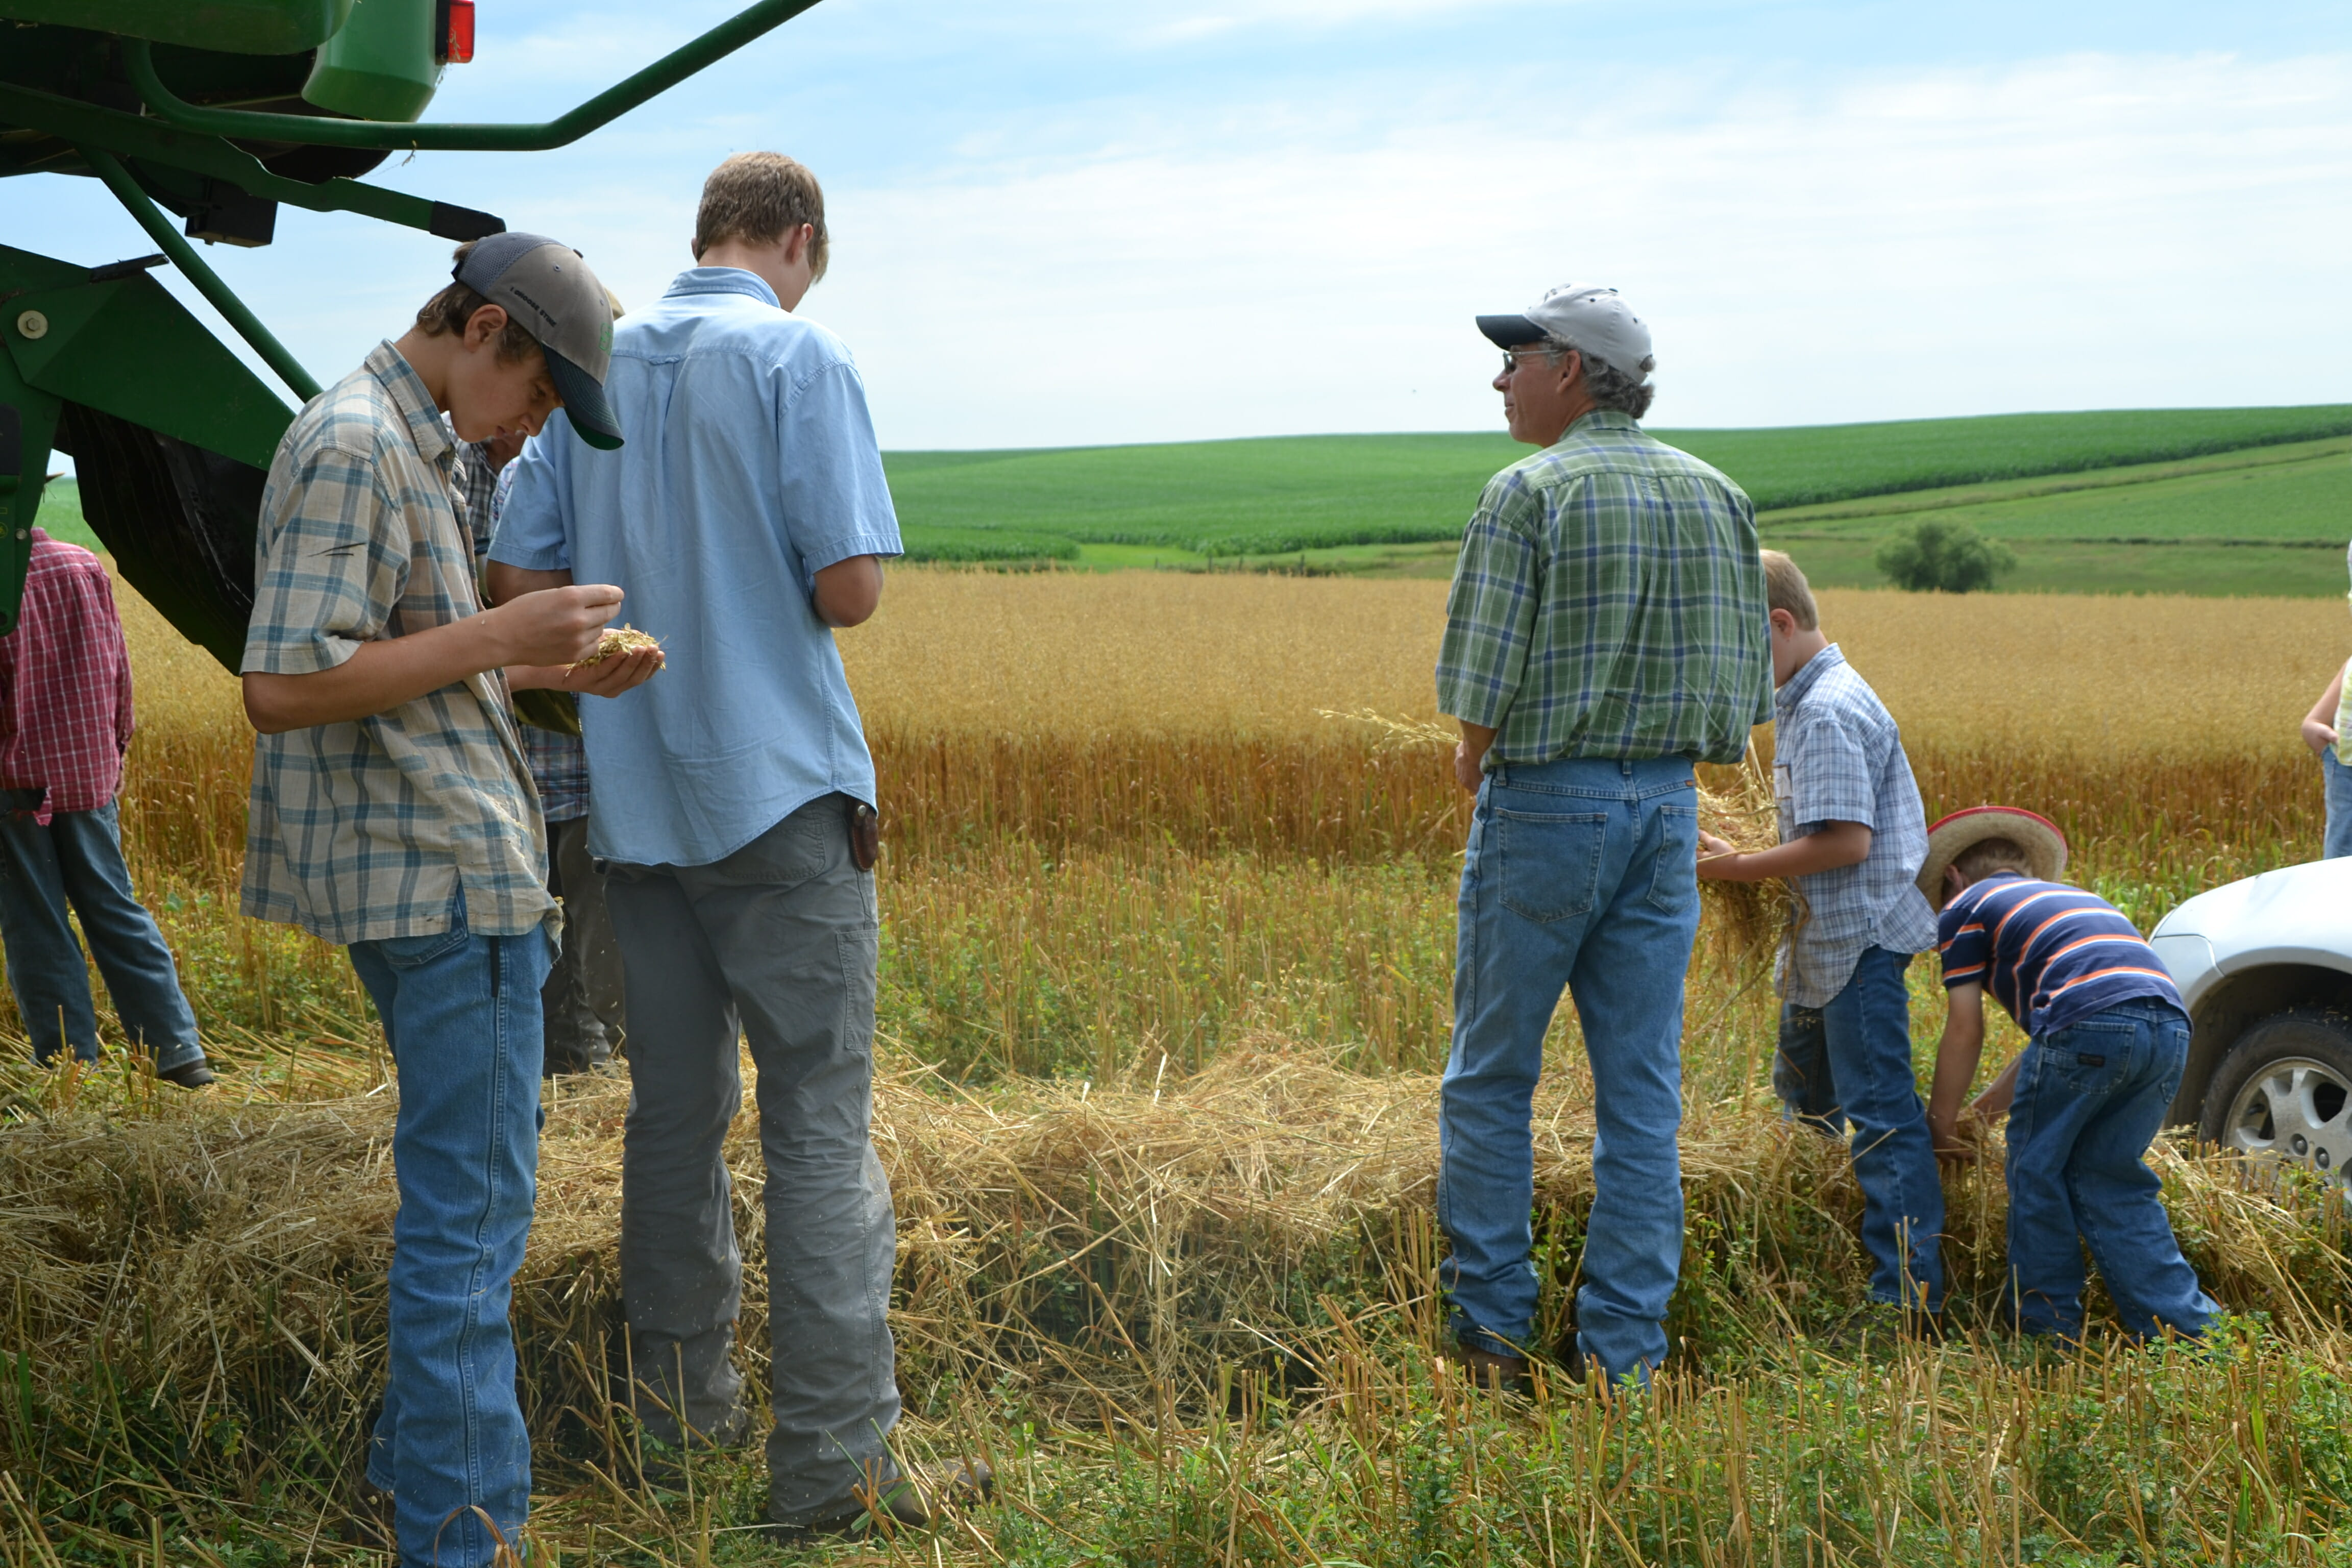 Attendees inspect the alfalfa underseeding from a harvested swath of oats.